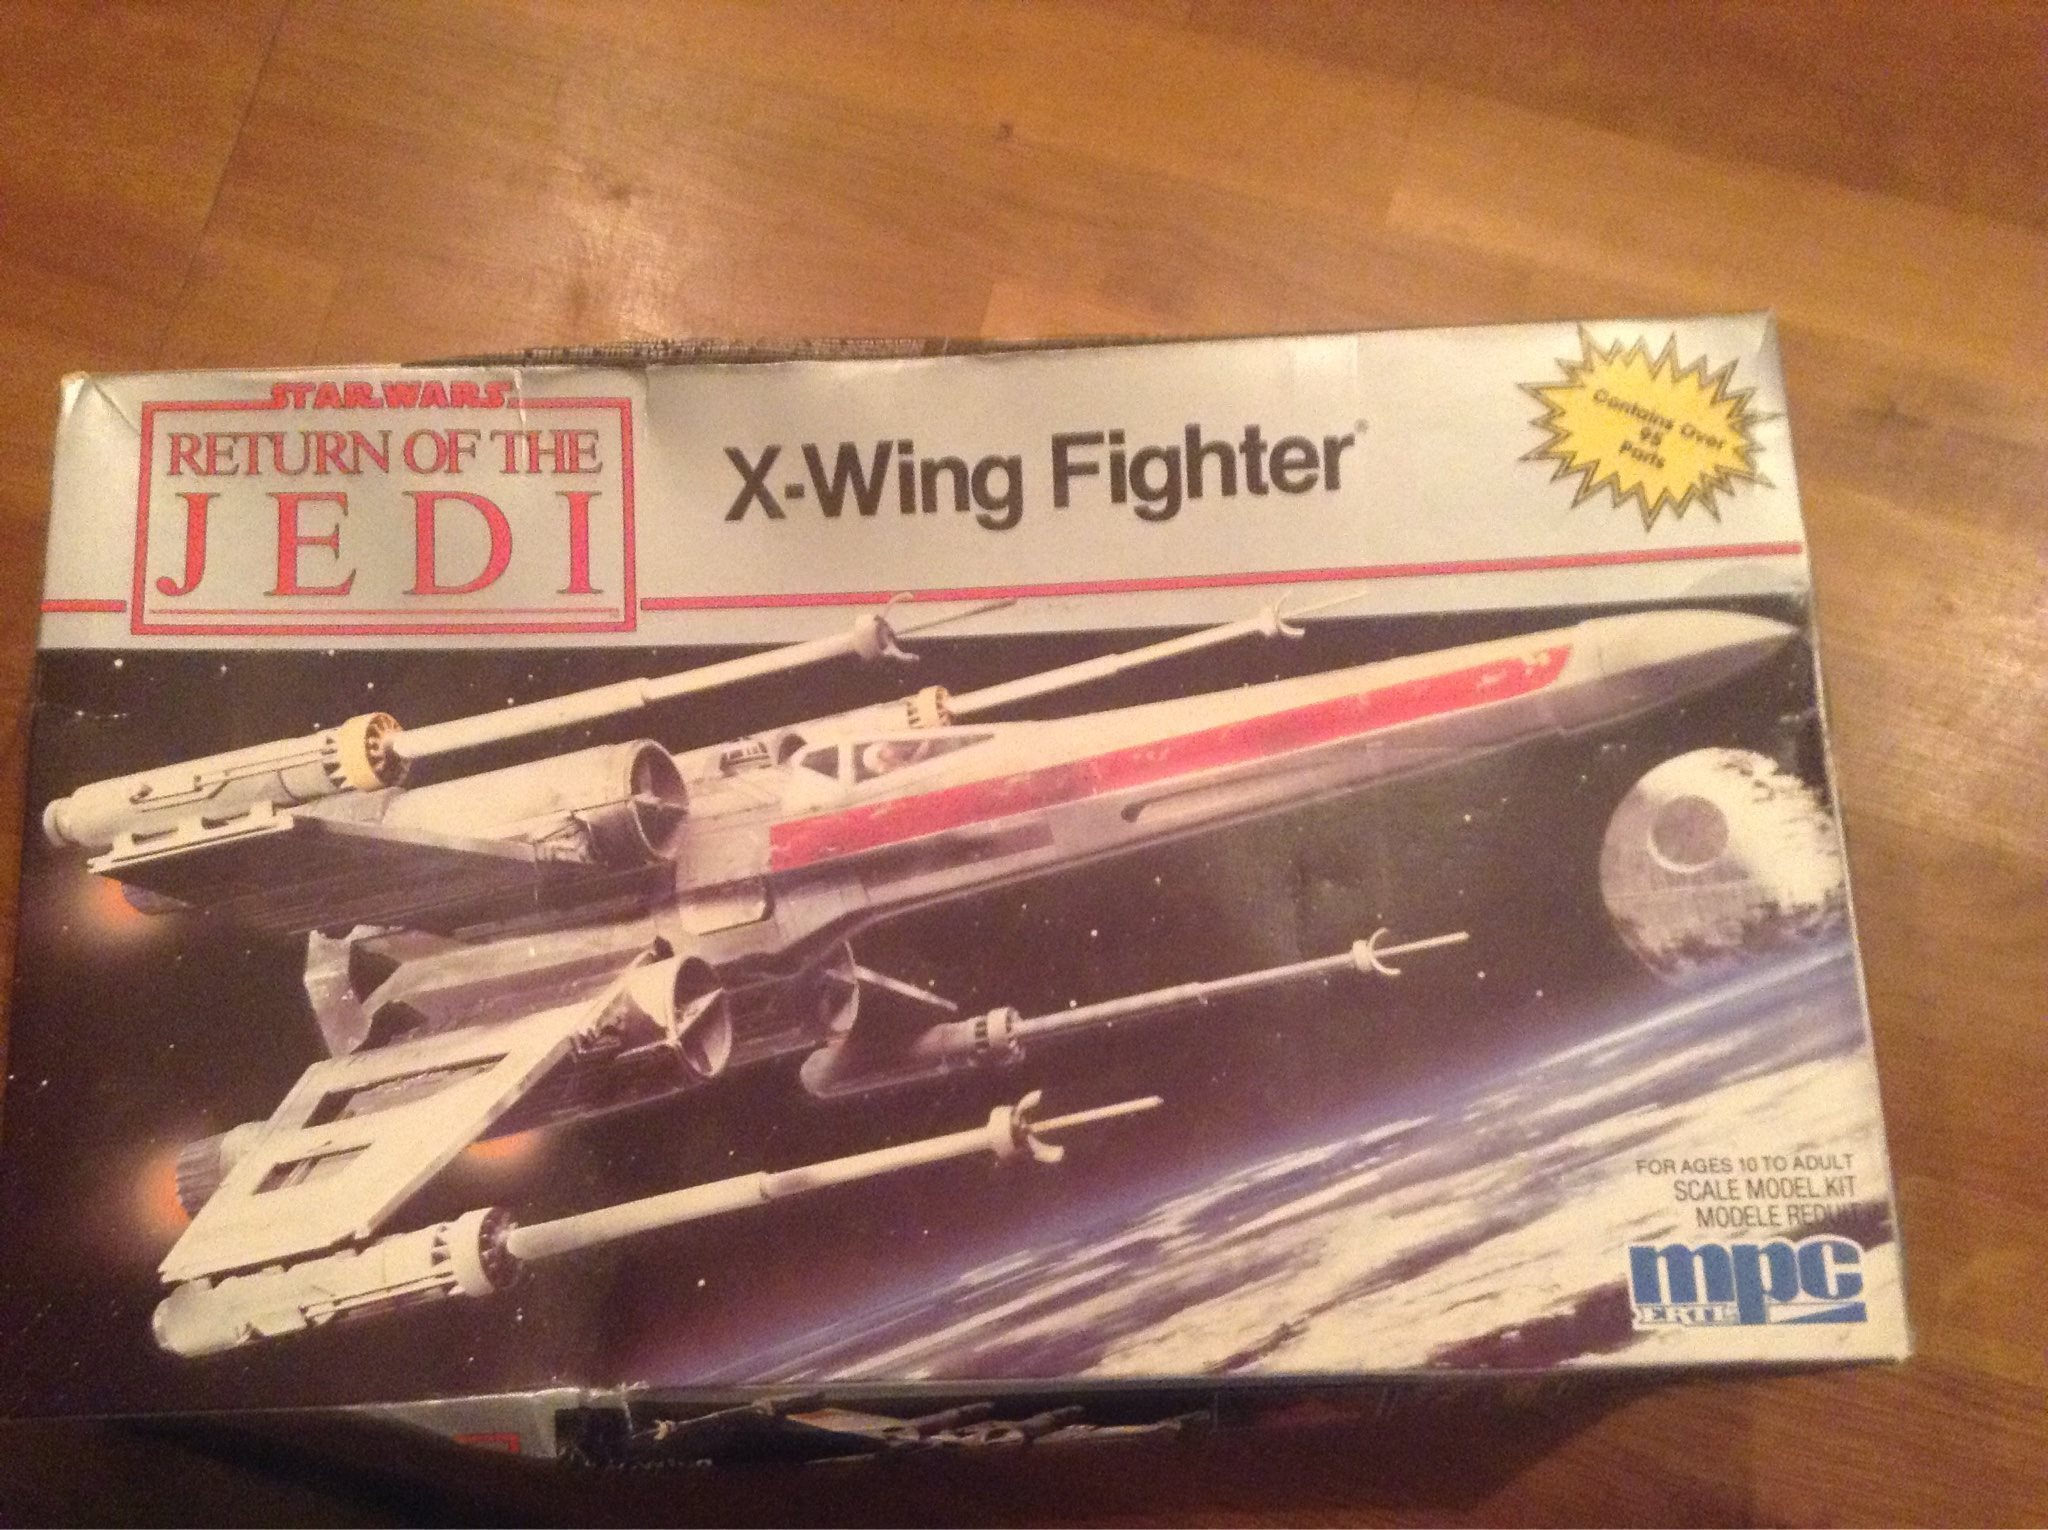 StarWars X-Wing fighter byggsats i skala 1:45